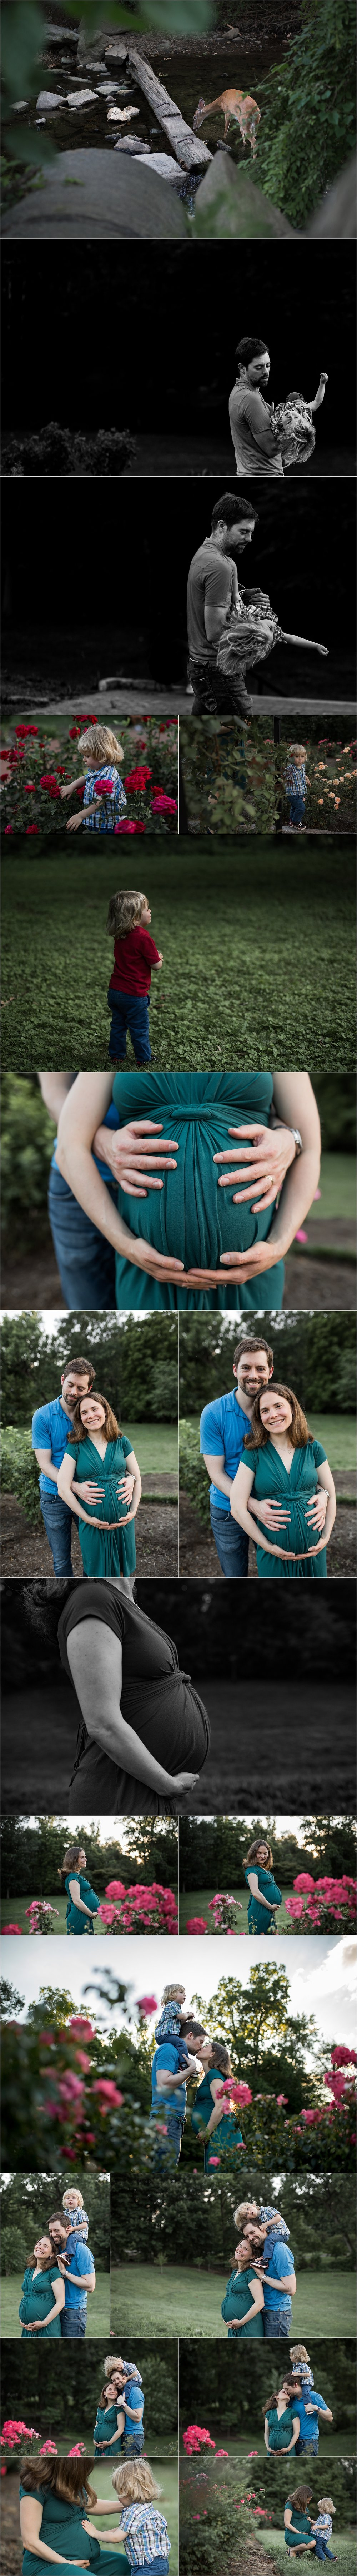 Arlington Virginia maternity session with toddler